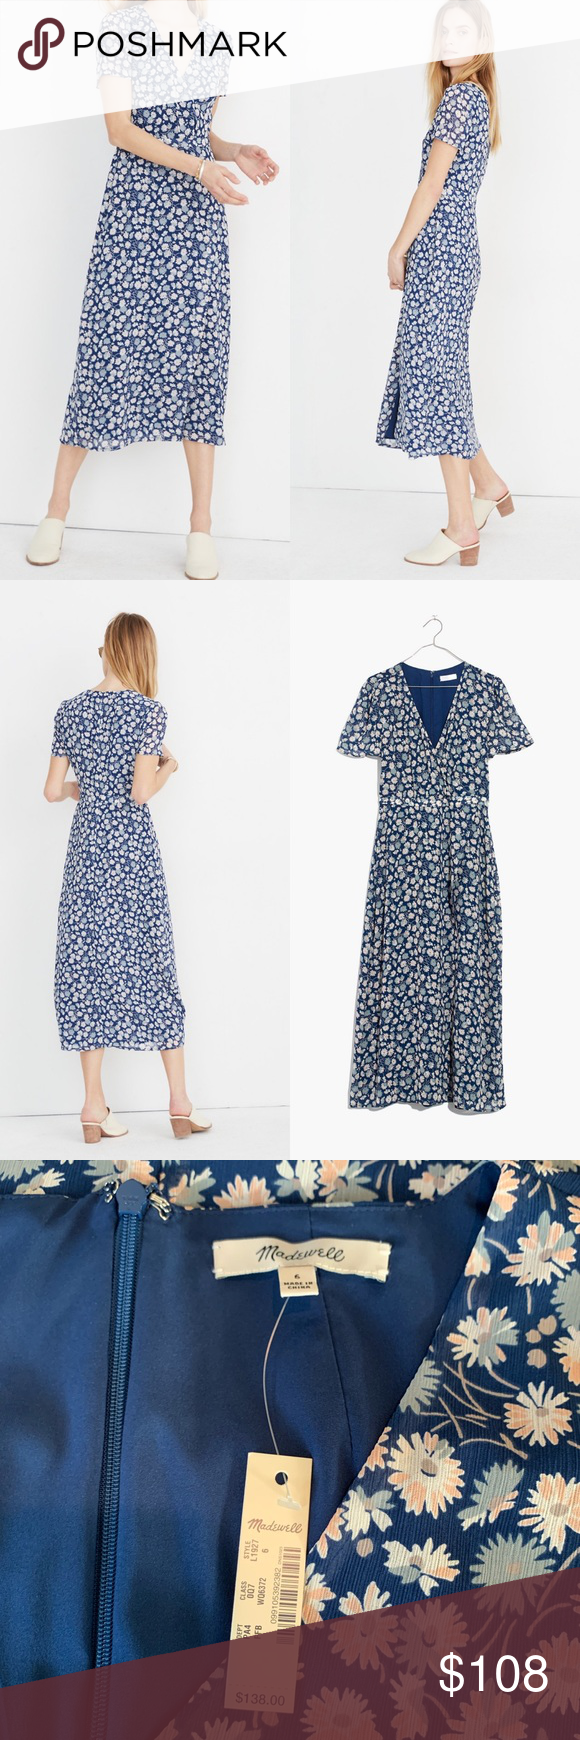 46ad3476138 Madewell Wrap-Front Midi Dress in French Floral NWT Size 6 Madewell Dresses  Midi